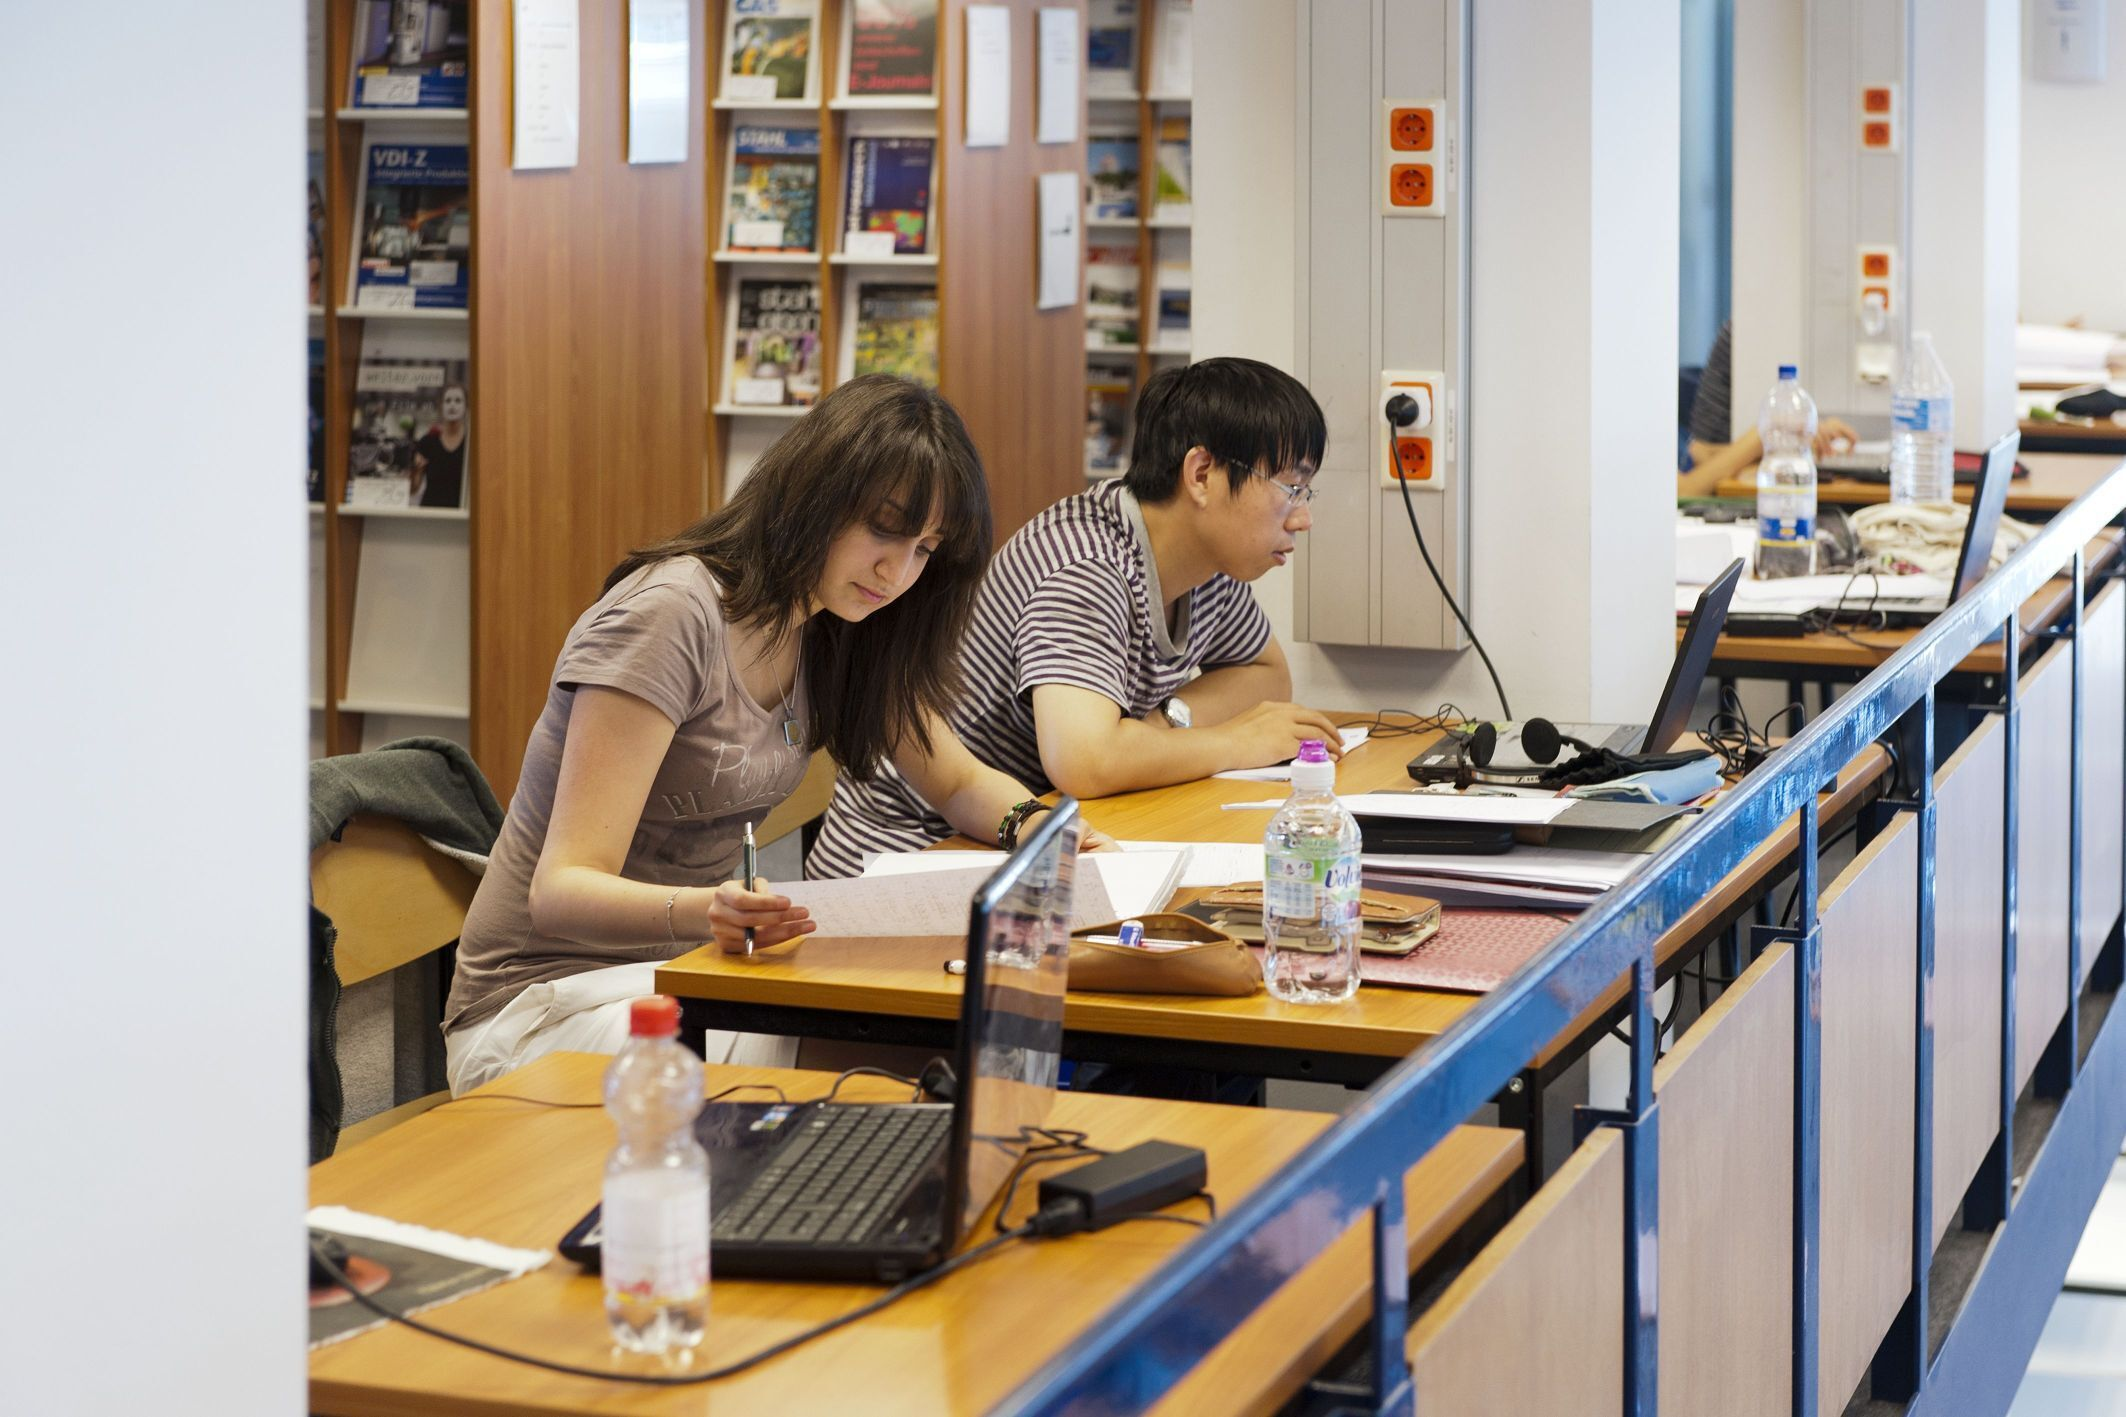 Study Room in the University Library